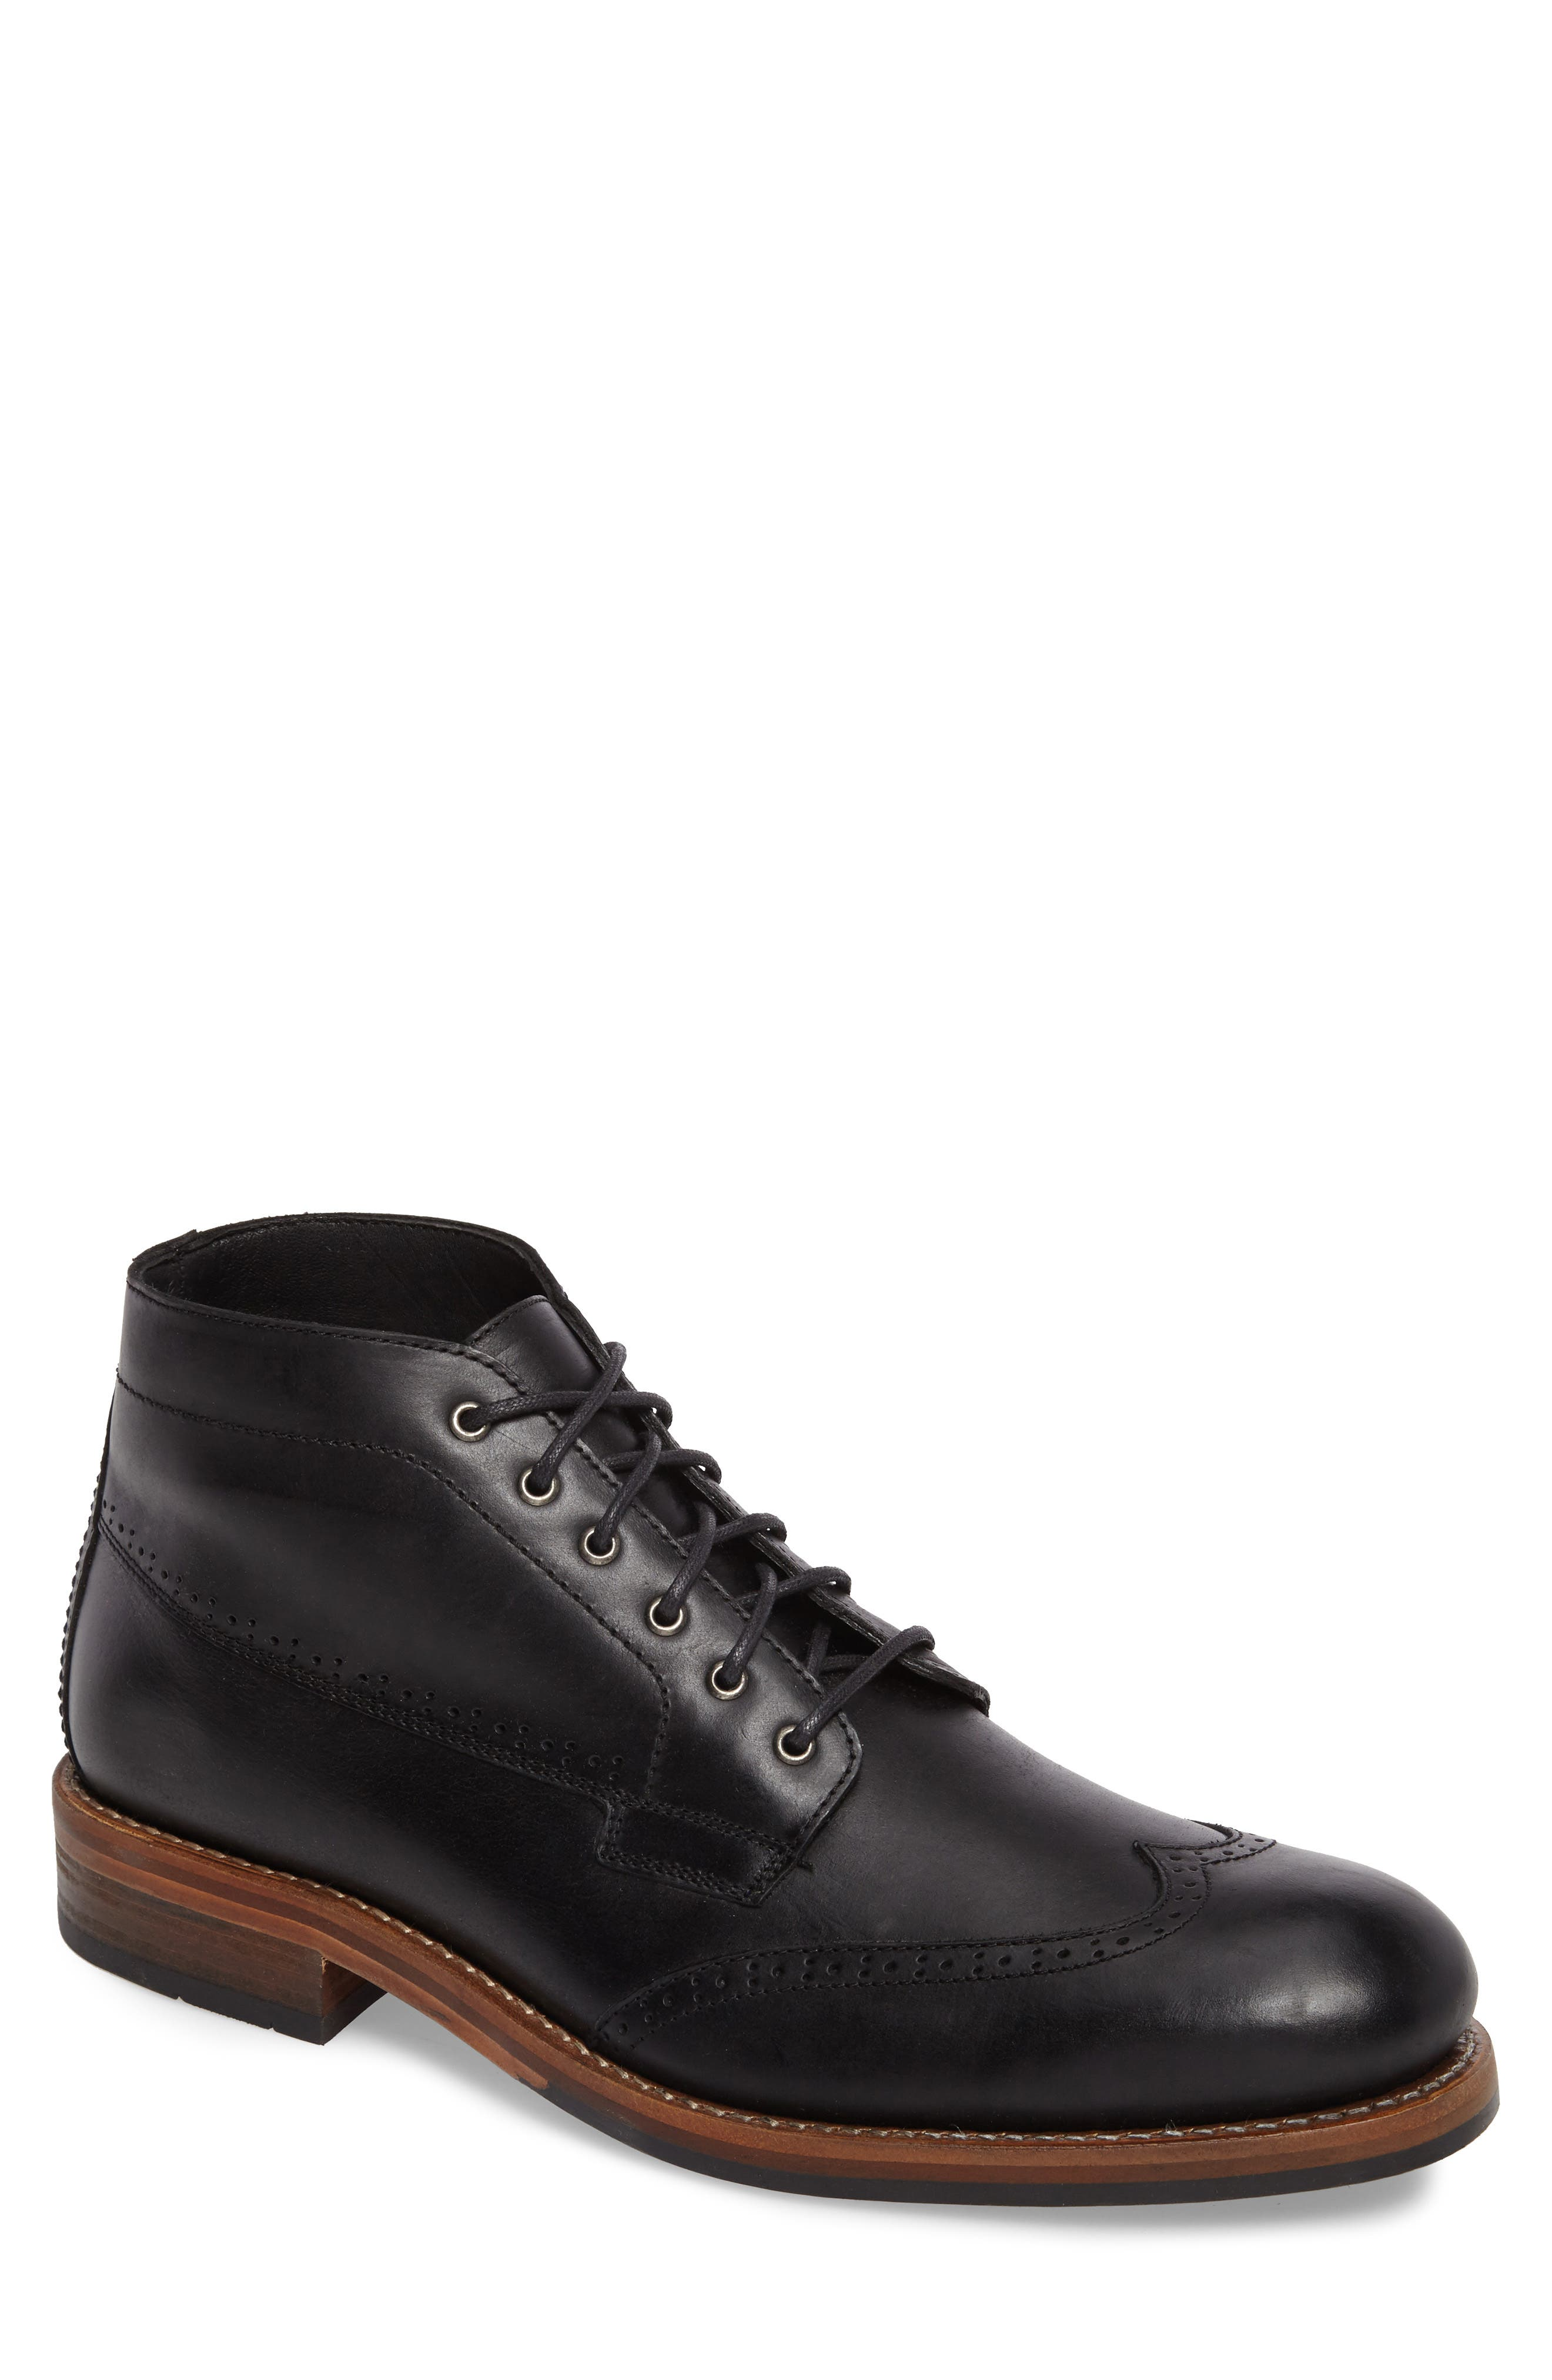 Harwell Wingtip Boot,                             Main thumbnail 1, color,                             BLACK